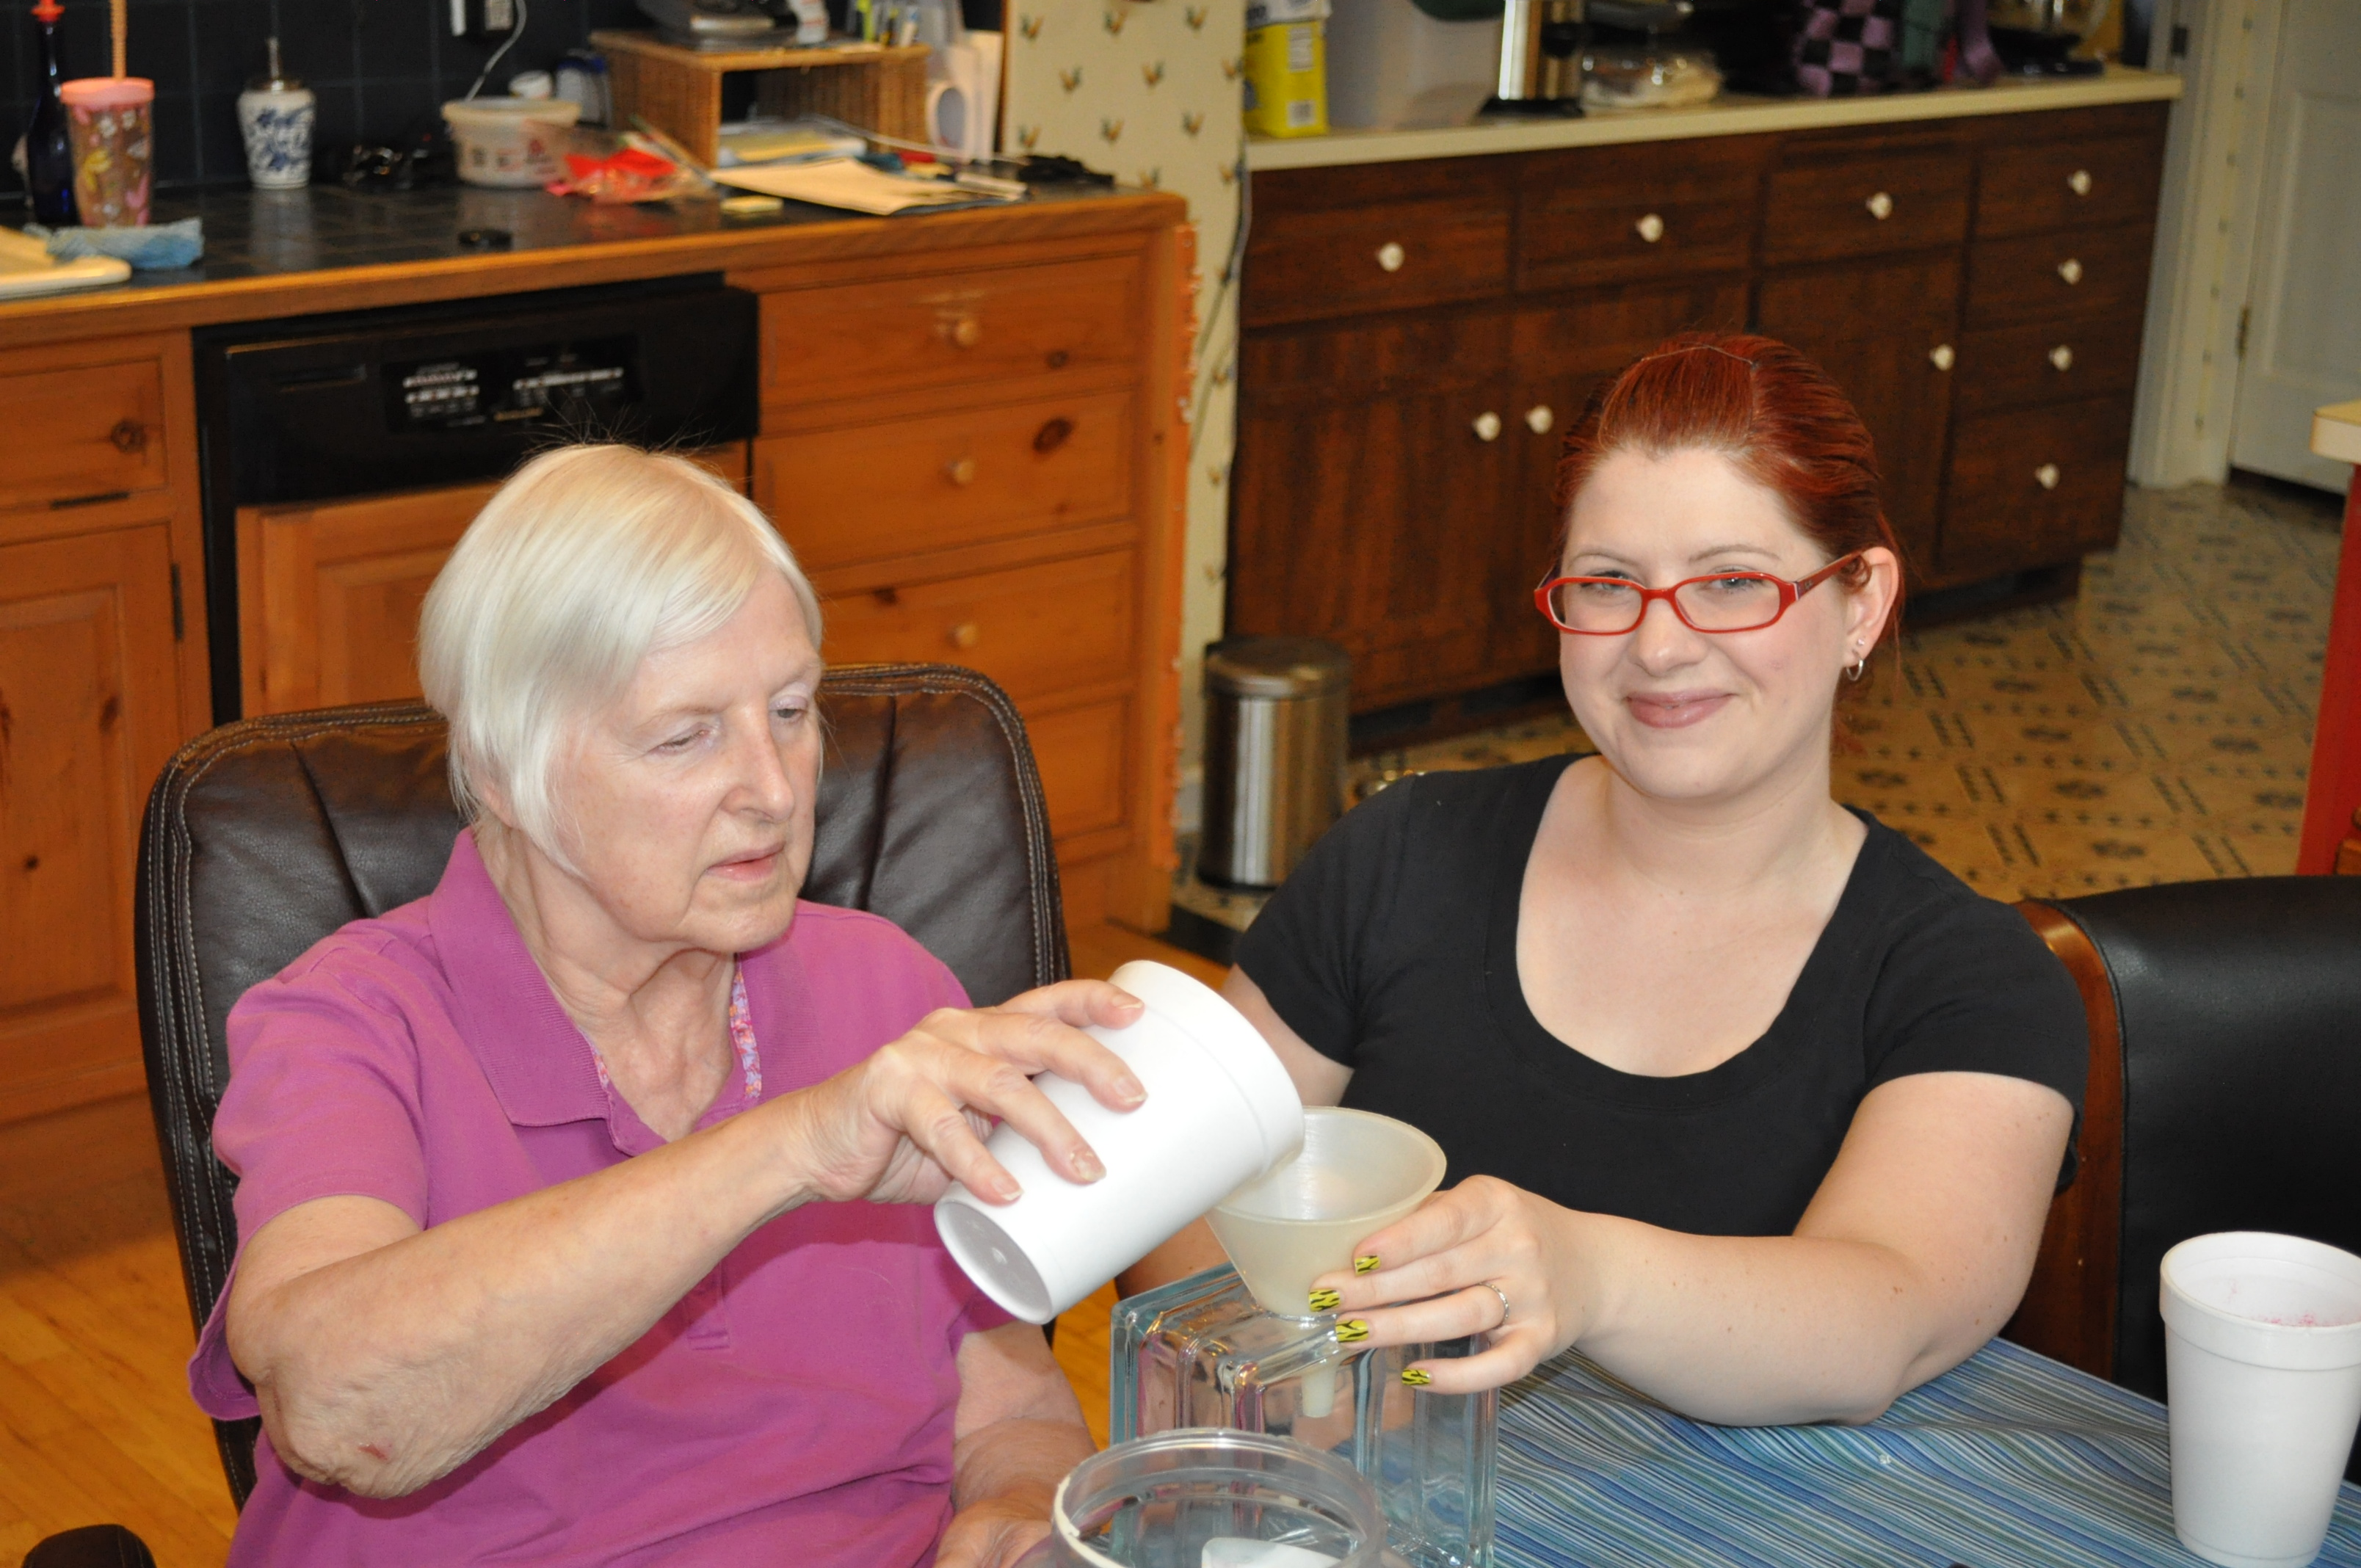 Dementia Care Activities